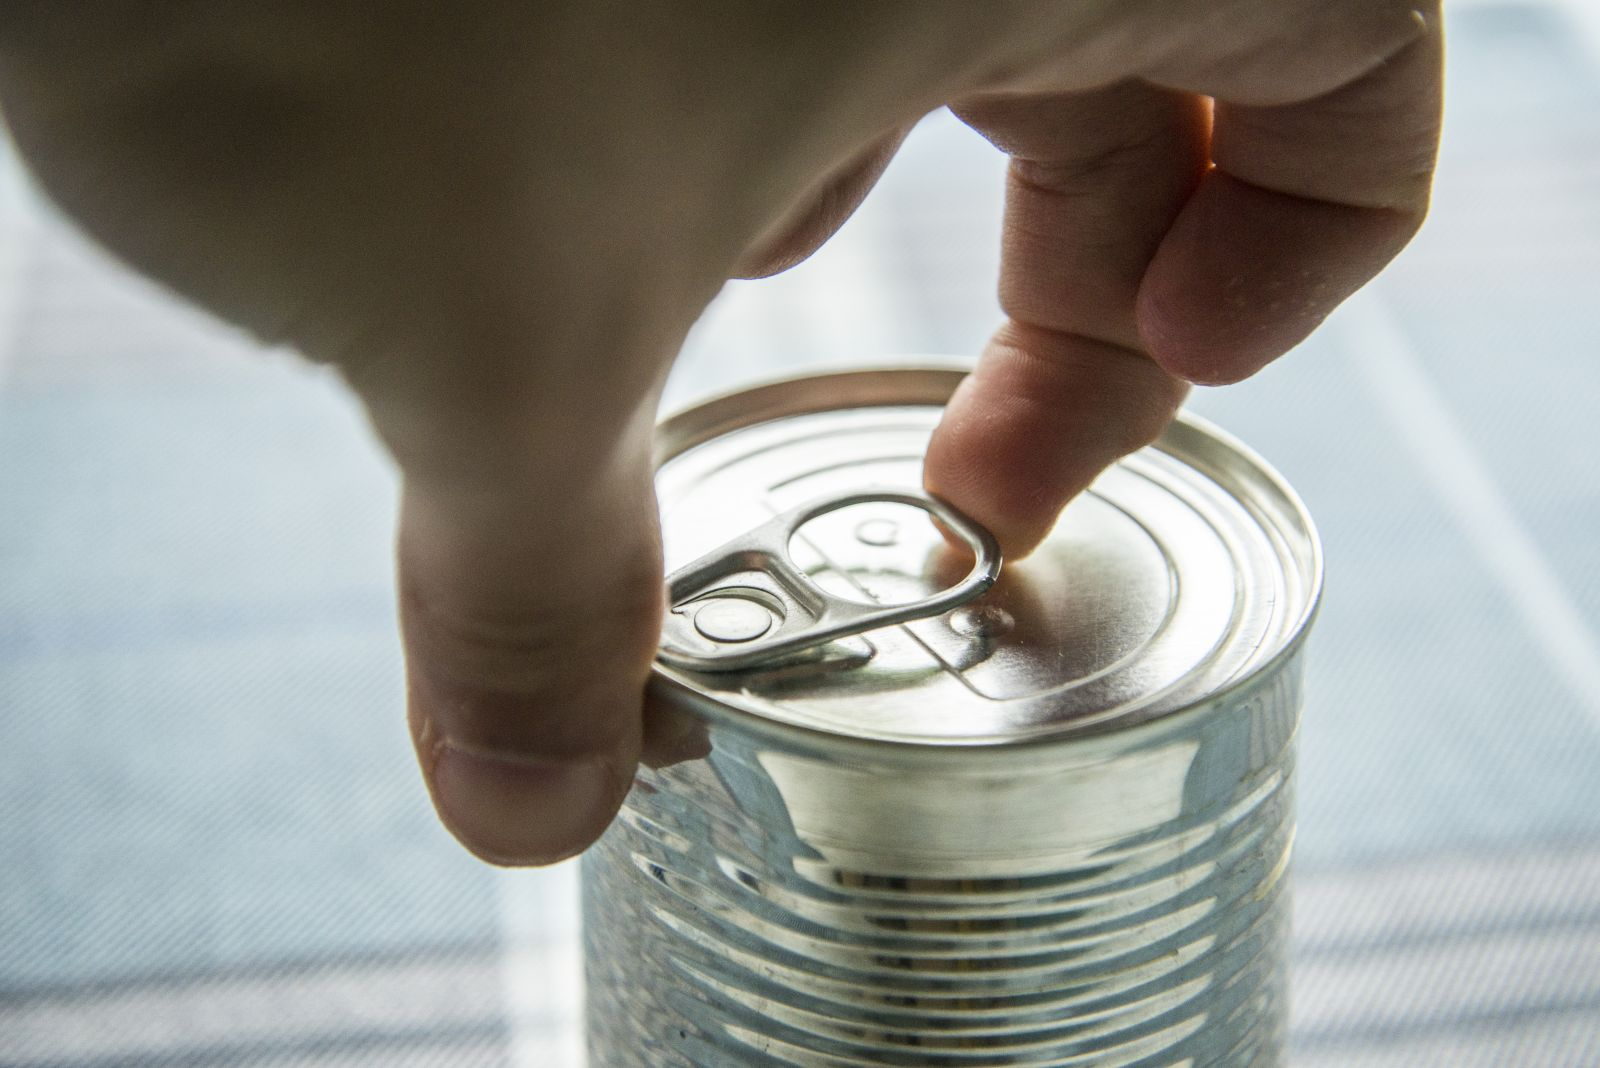 Person opening a can of food (Istock credit: Mario)